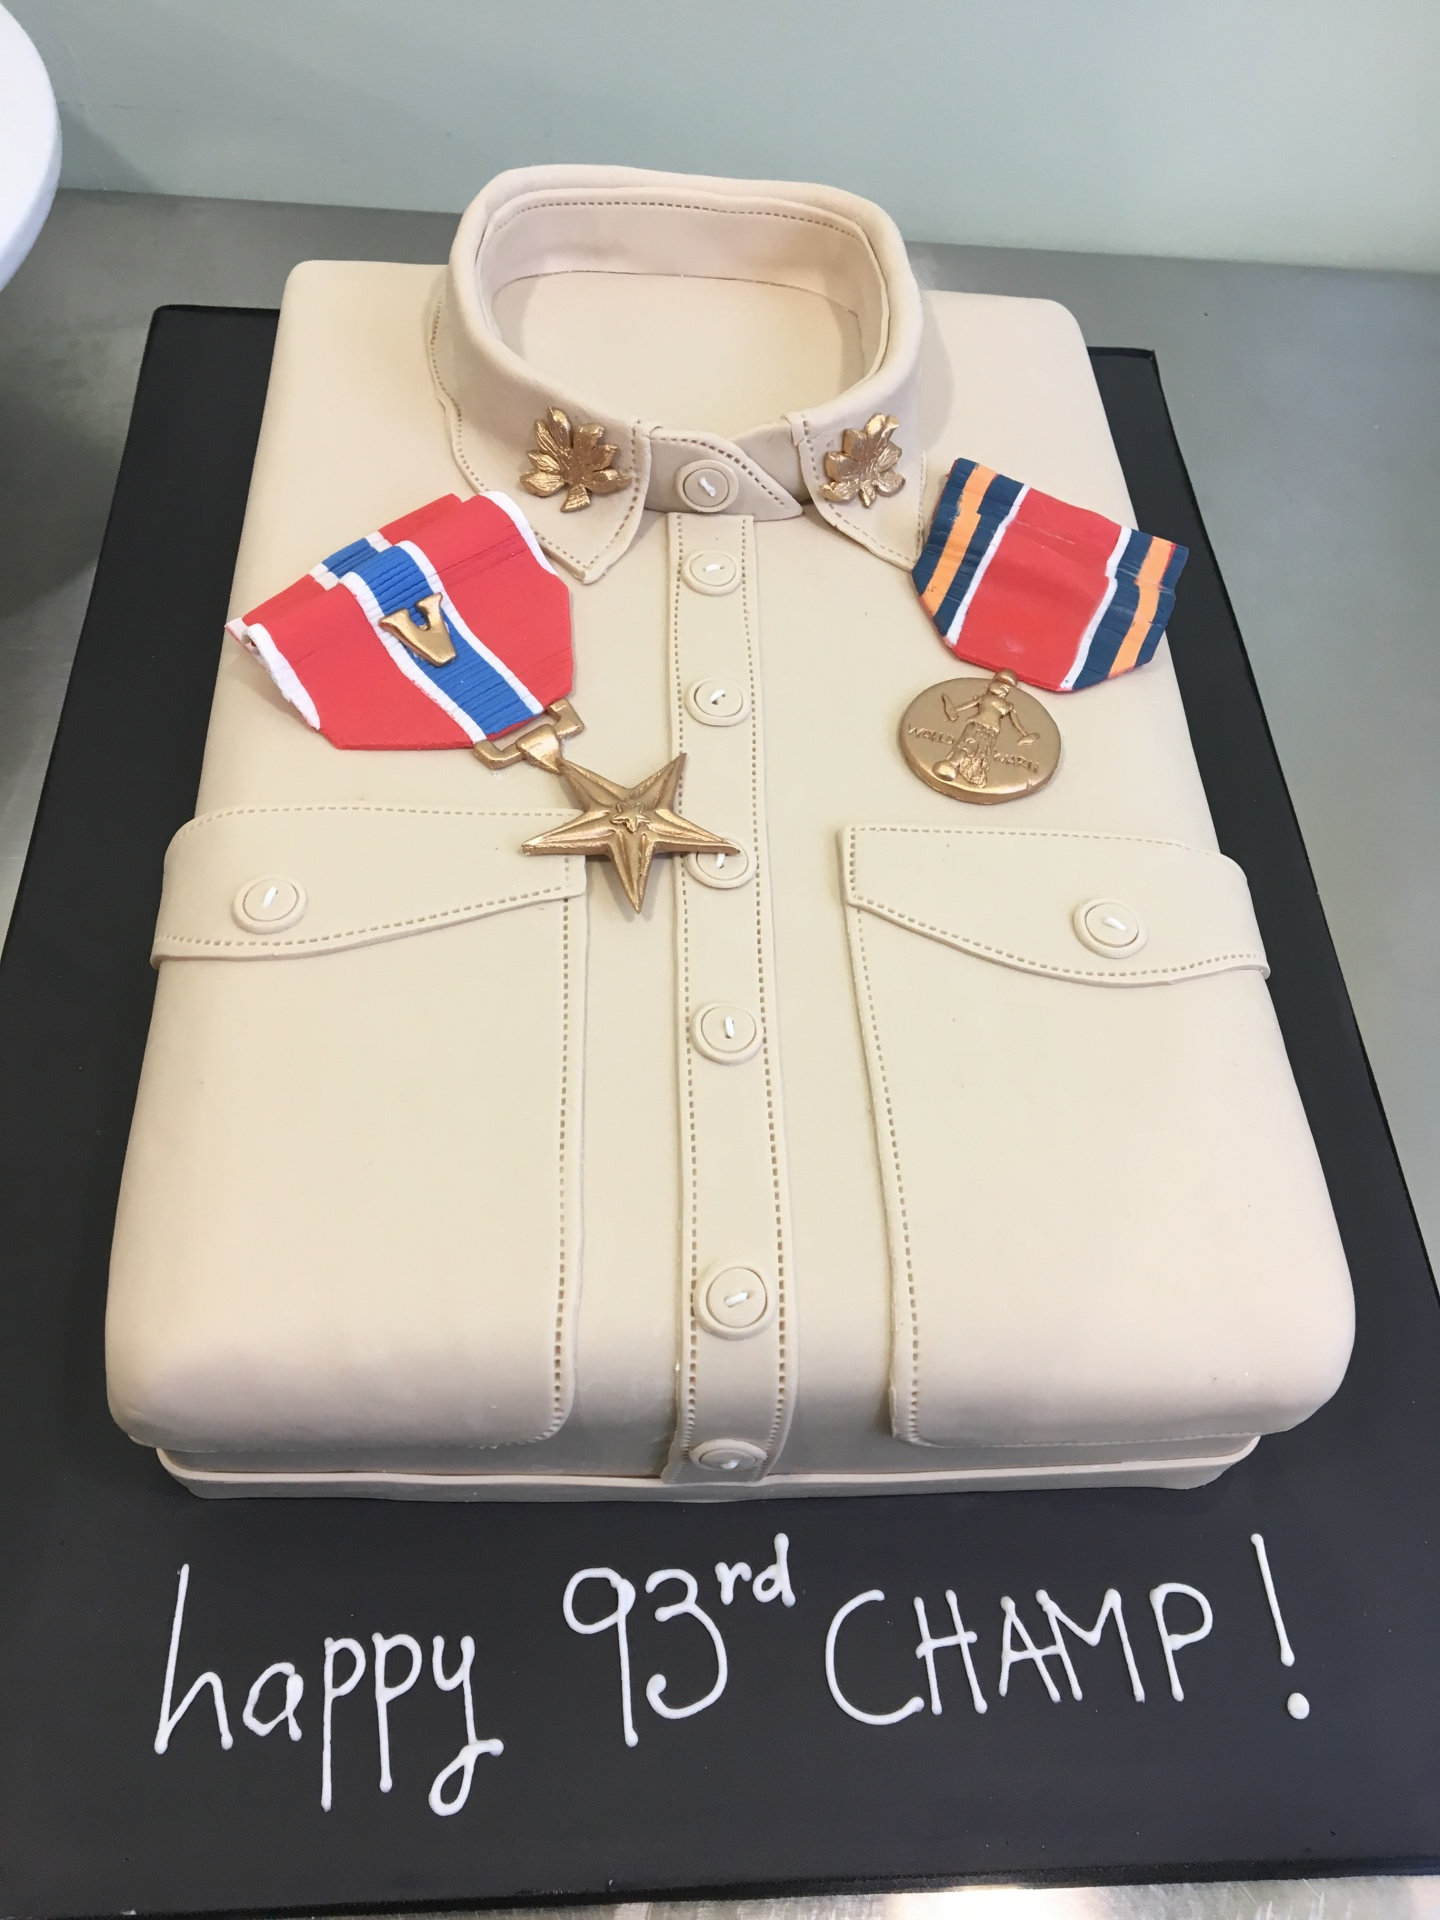 Custom Cakes NJ Army Shirt Cake with Fondant Medals